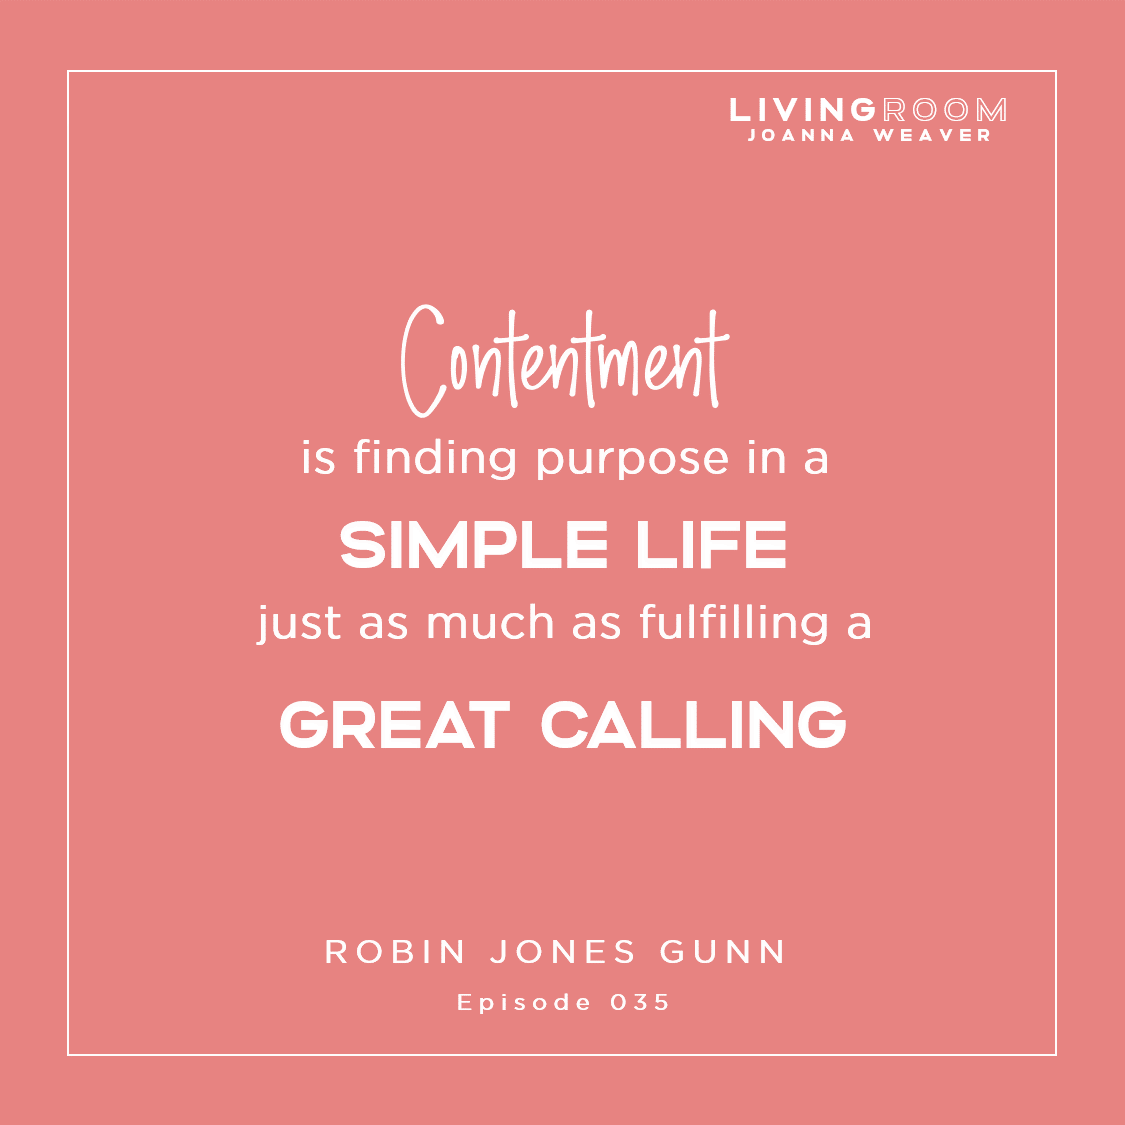 """Contentment is finding purpose in a simple life just as much as fulfilling a great calling."" - Robin Jones Gunn - The Living Room 035"